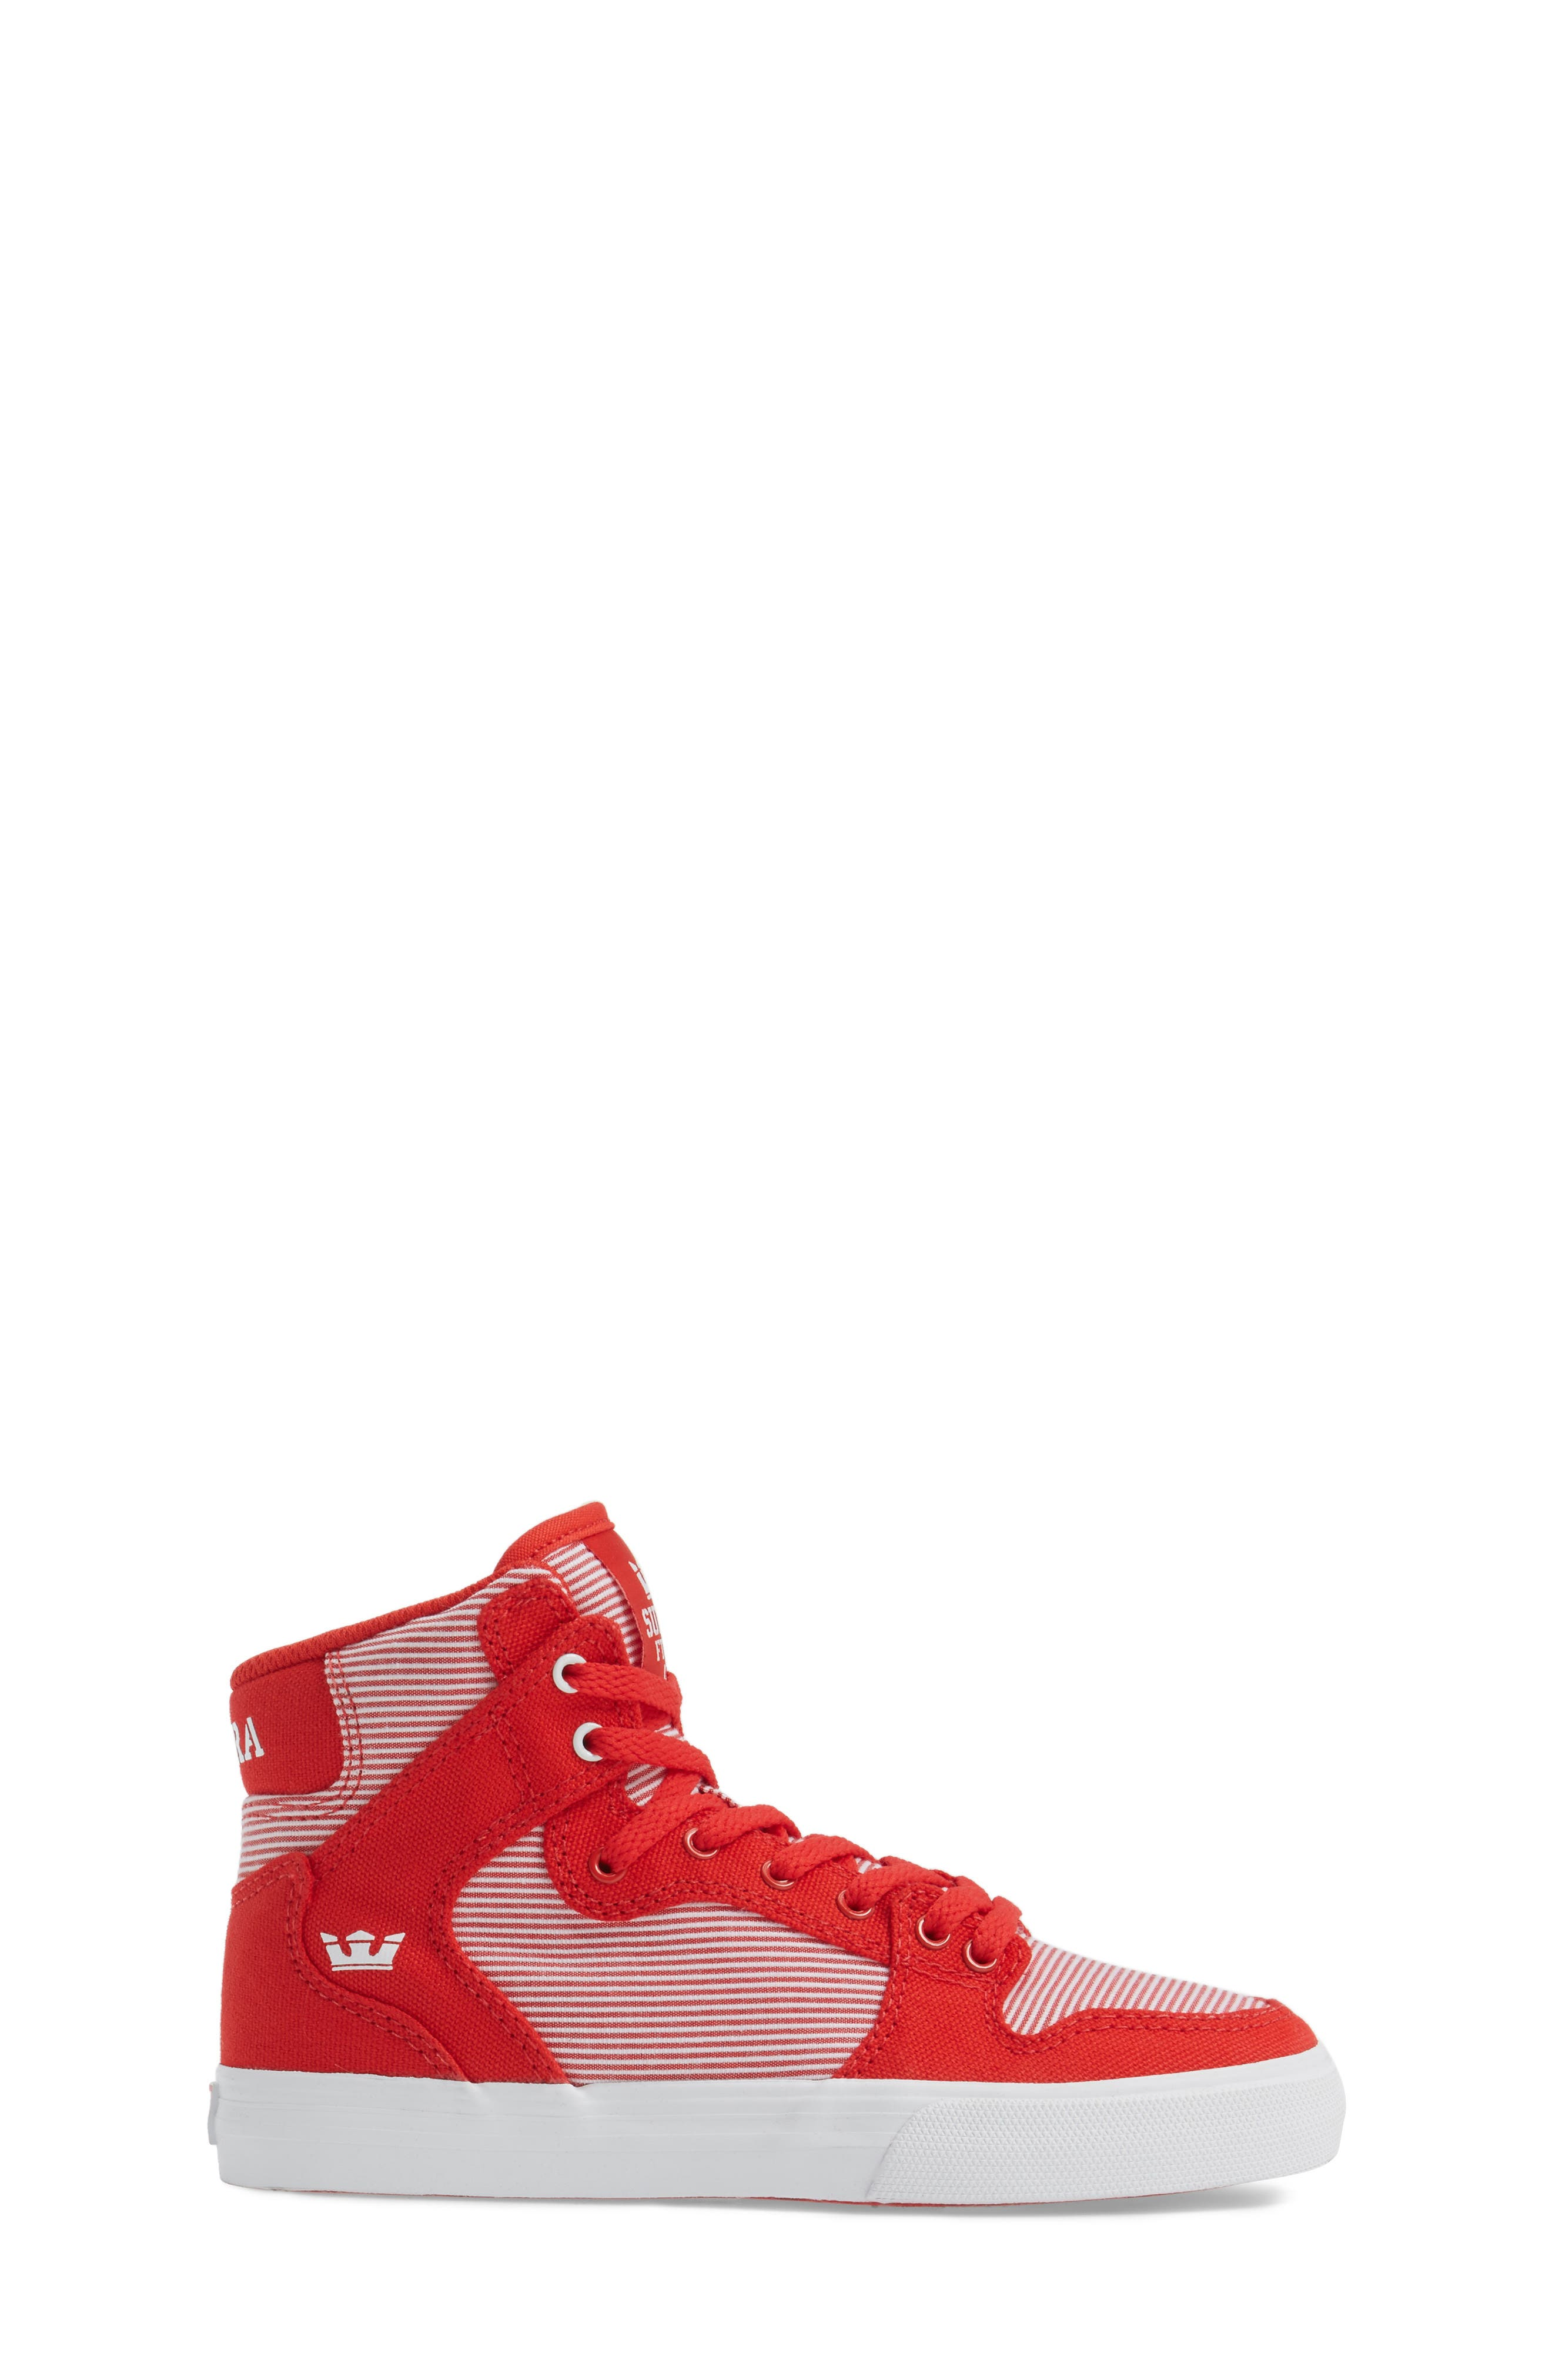 Vaider High Top Sneaker,                             Alternate thumbnail 3, color,